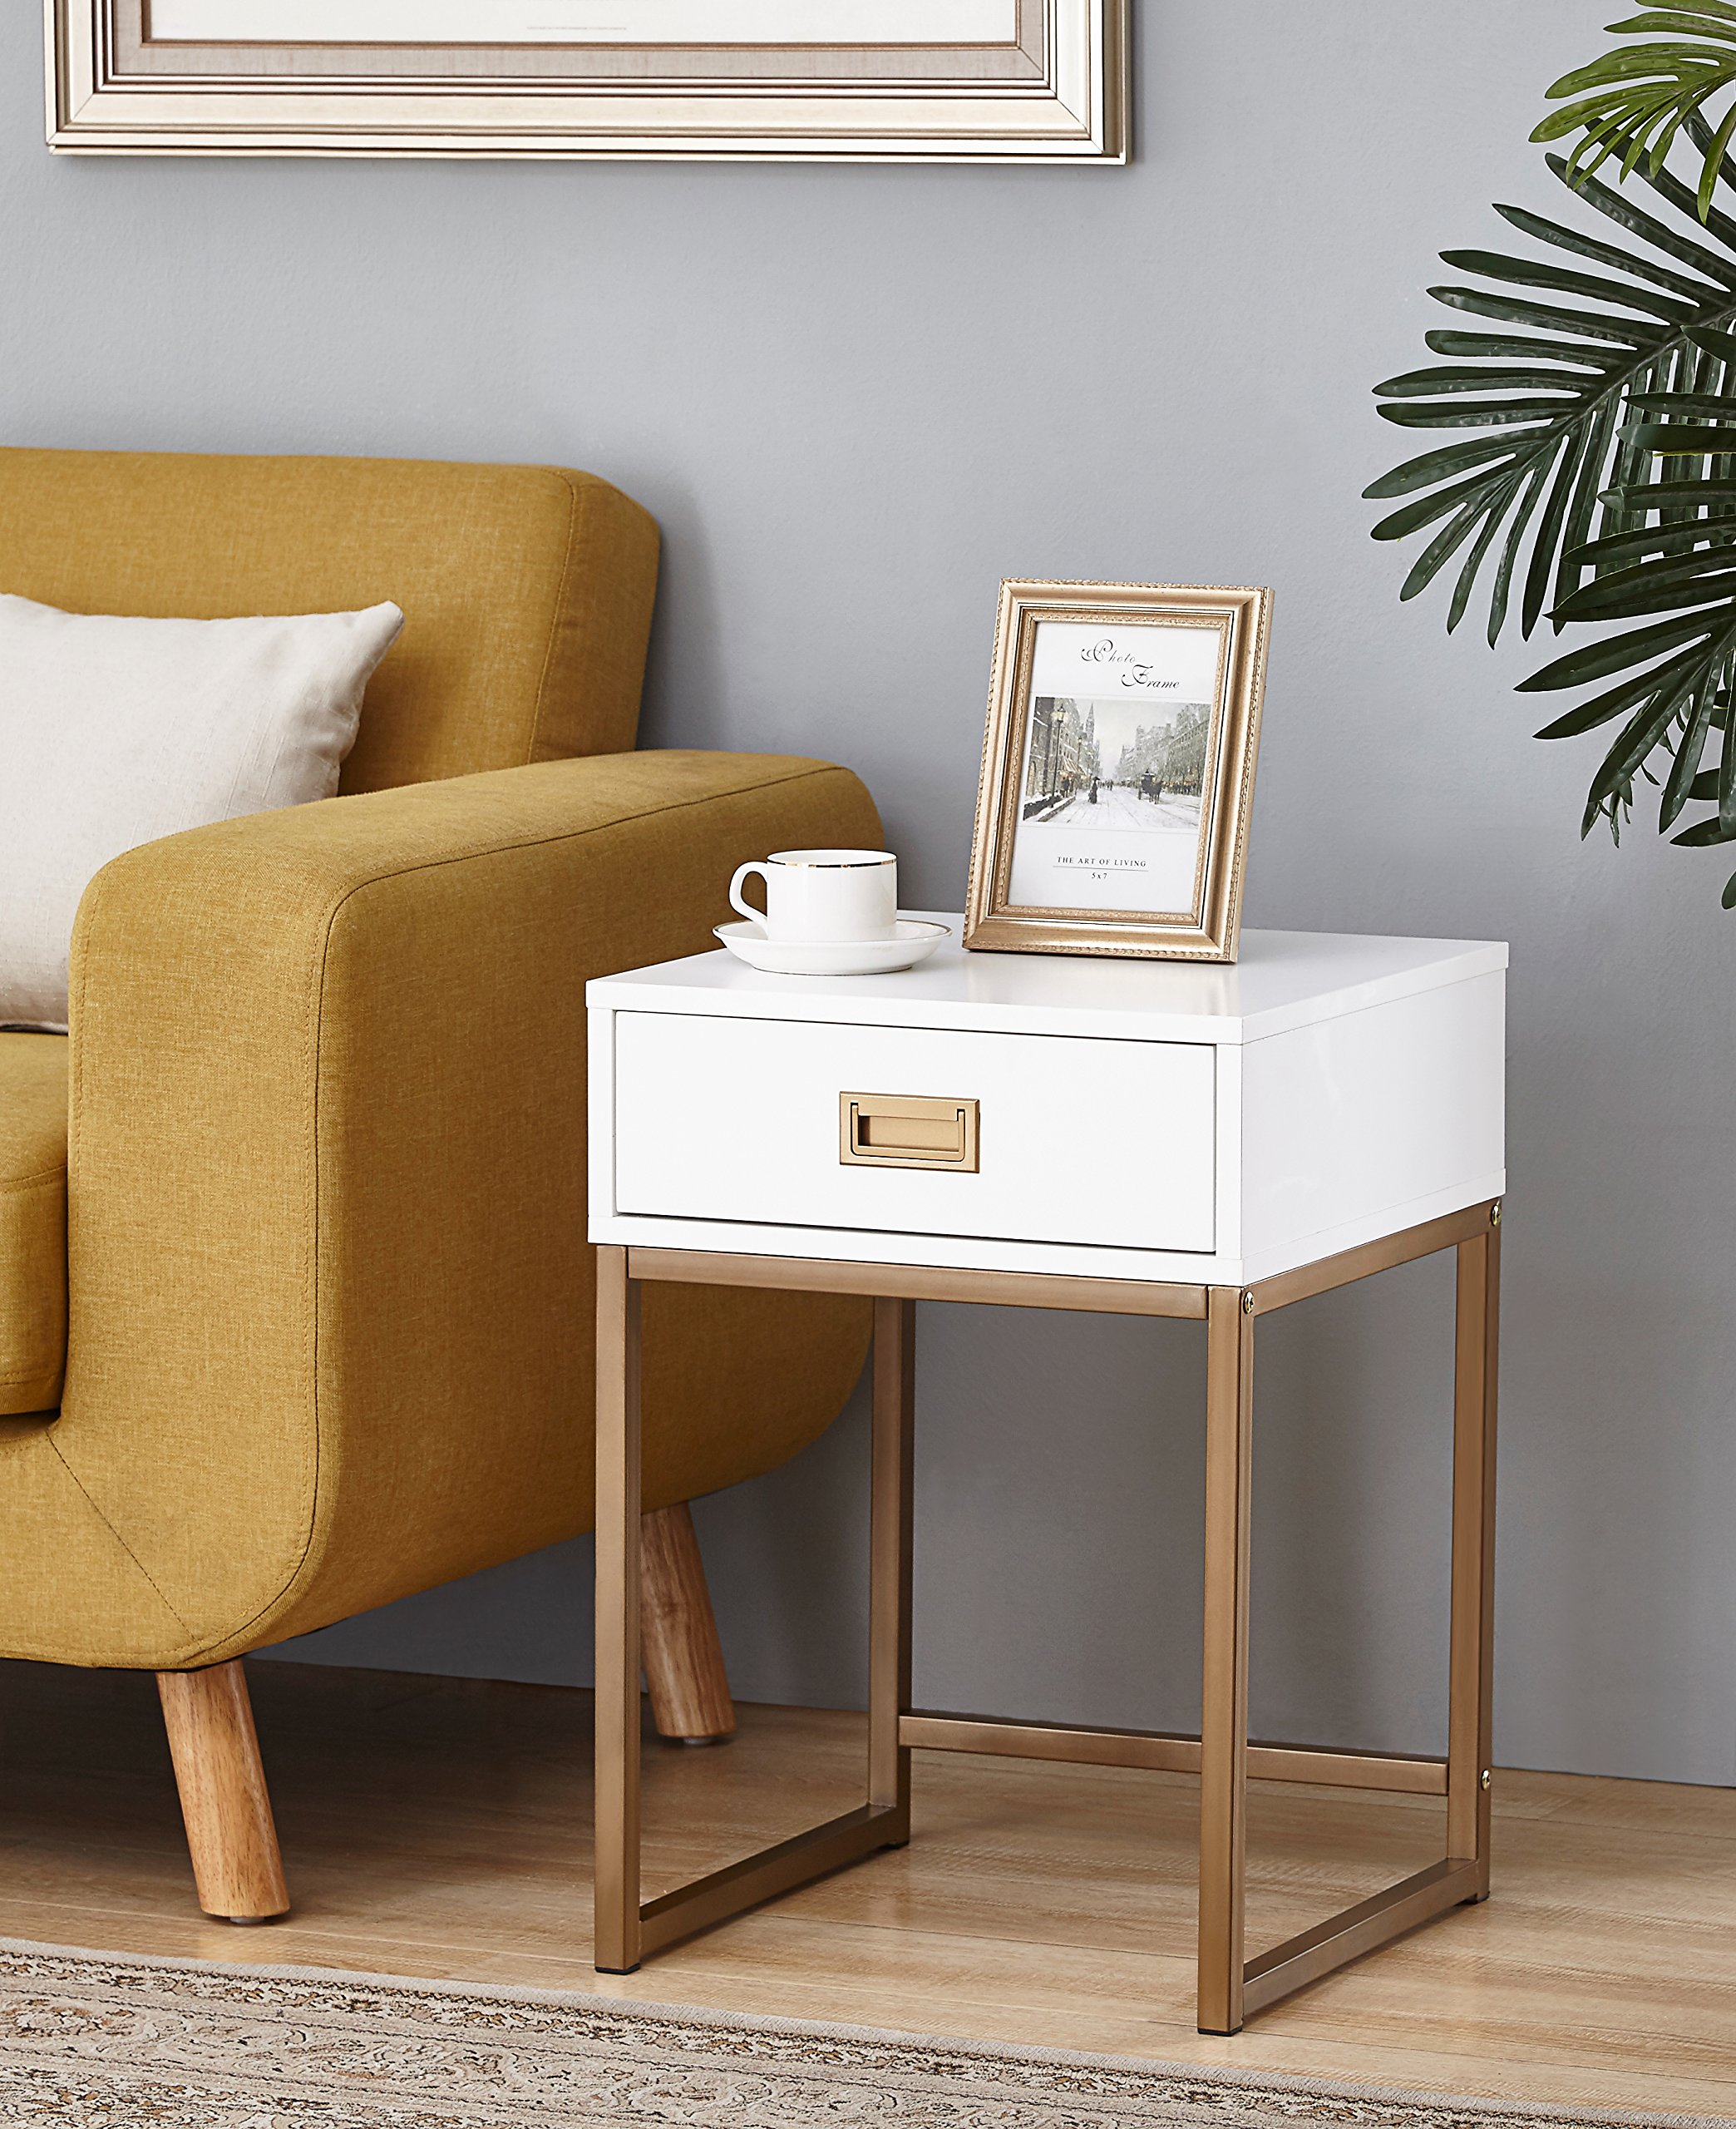 White / Golden Finish Modern Nightstand Side End Table with Drawer by eHomeProducts